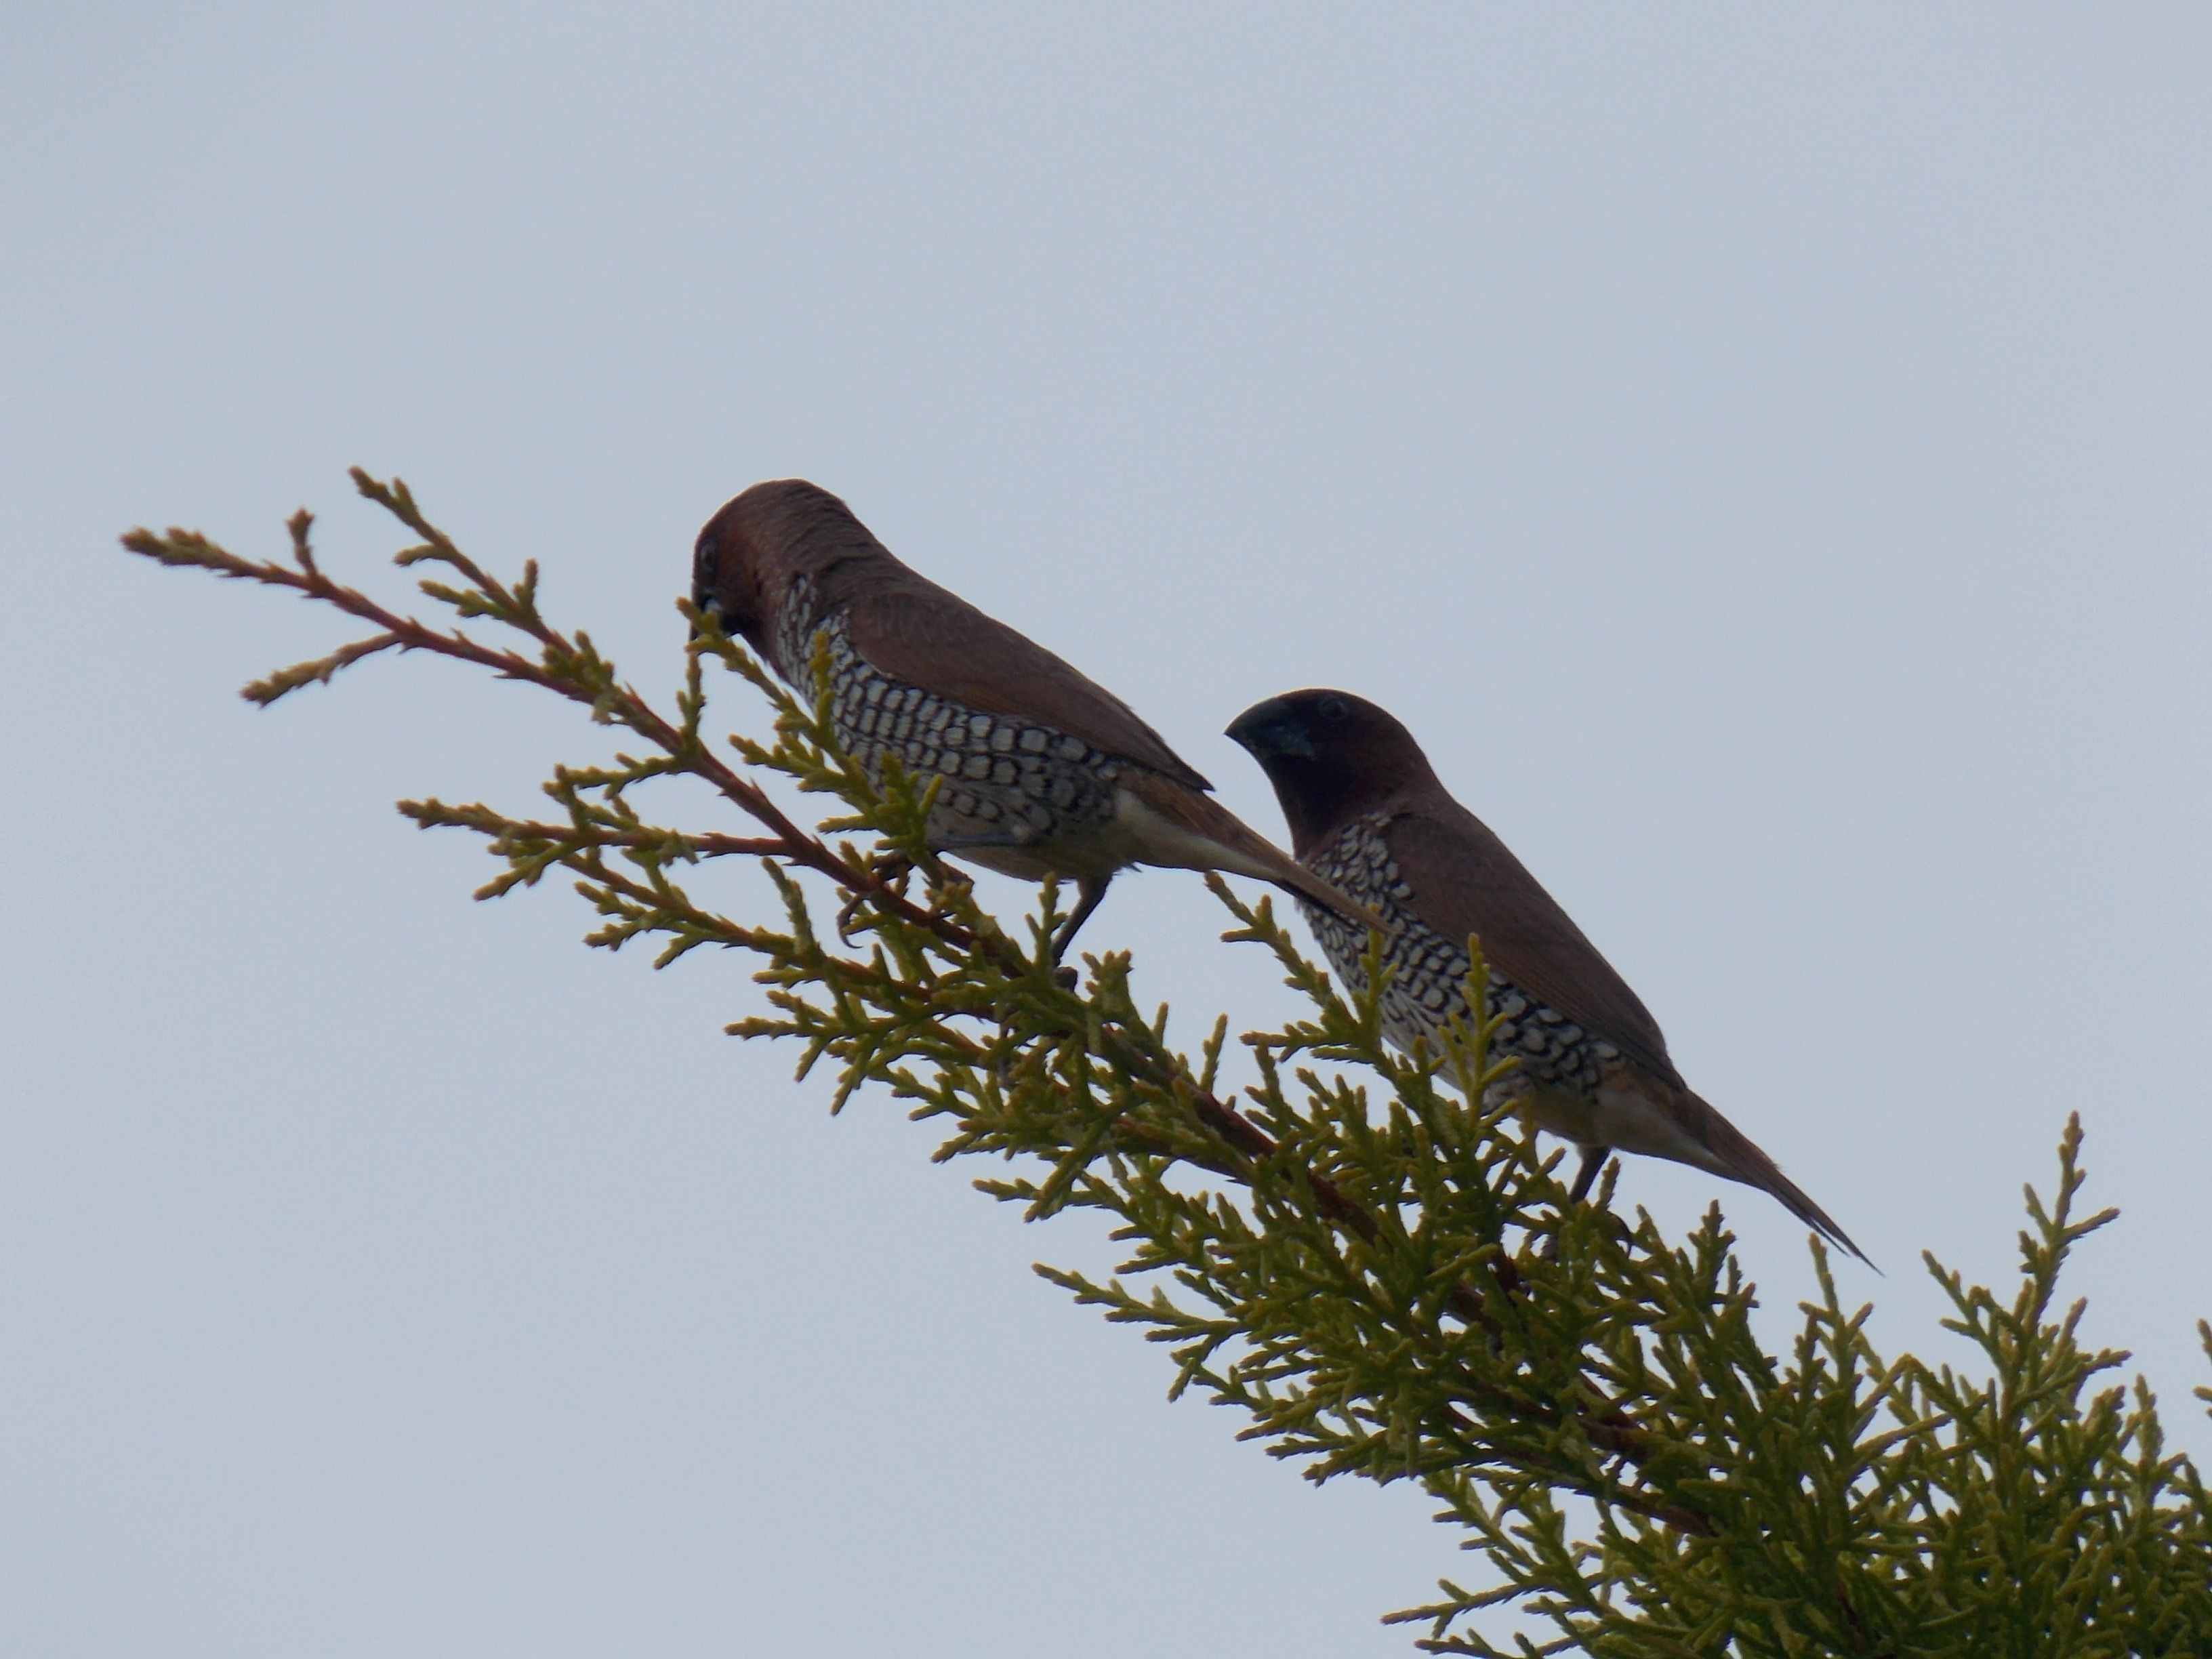 Pair Of Munias In Bangalore Snap Taken By My 8 Yr Old Son Animals Photographer Olds